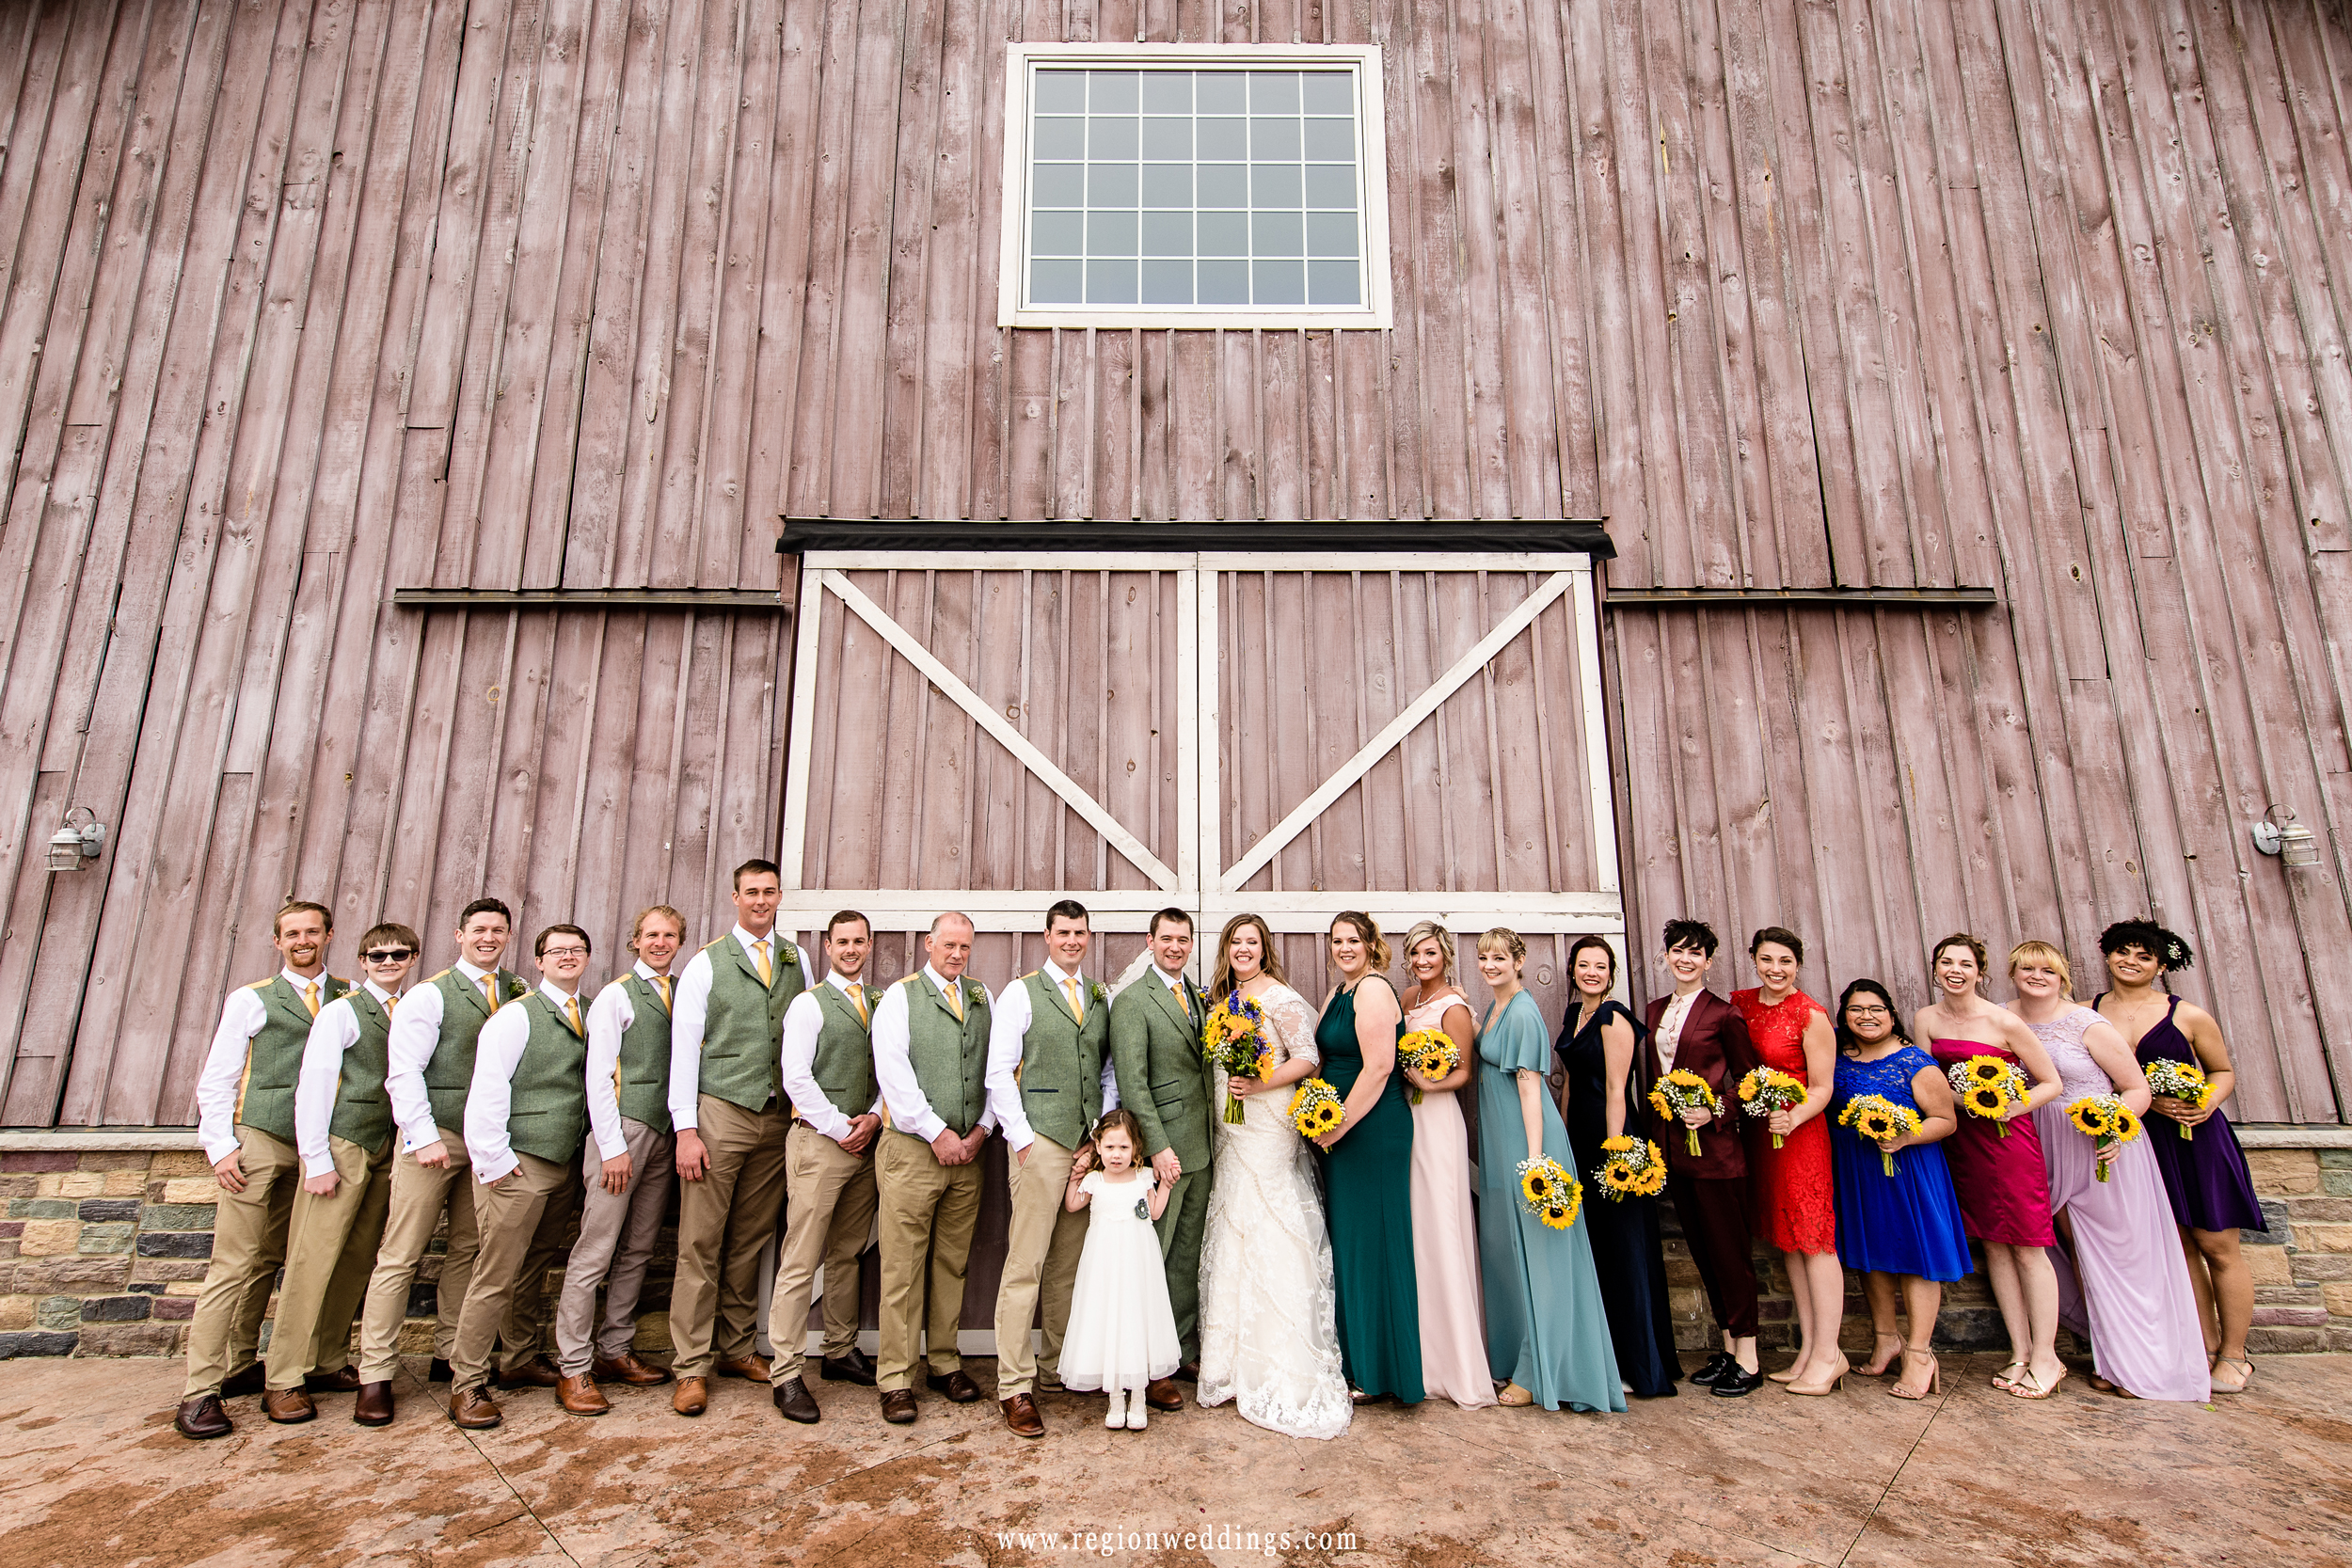 Wedding party group photo at County Line Orchard.